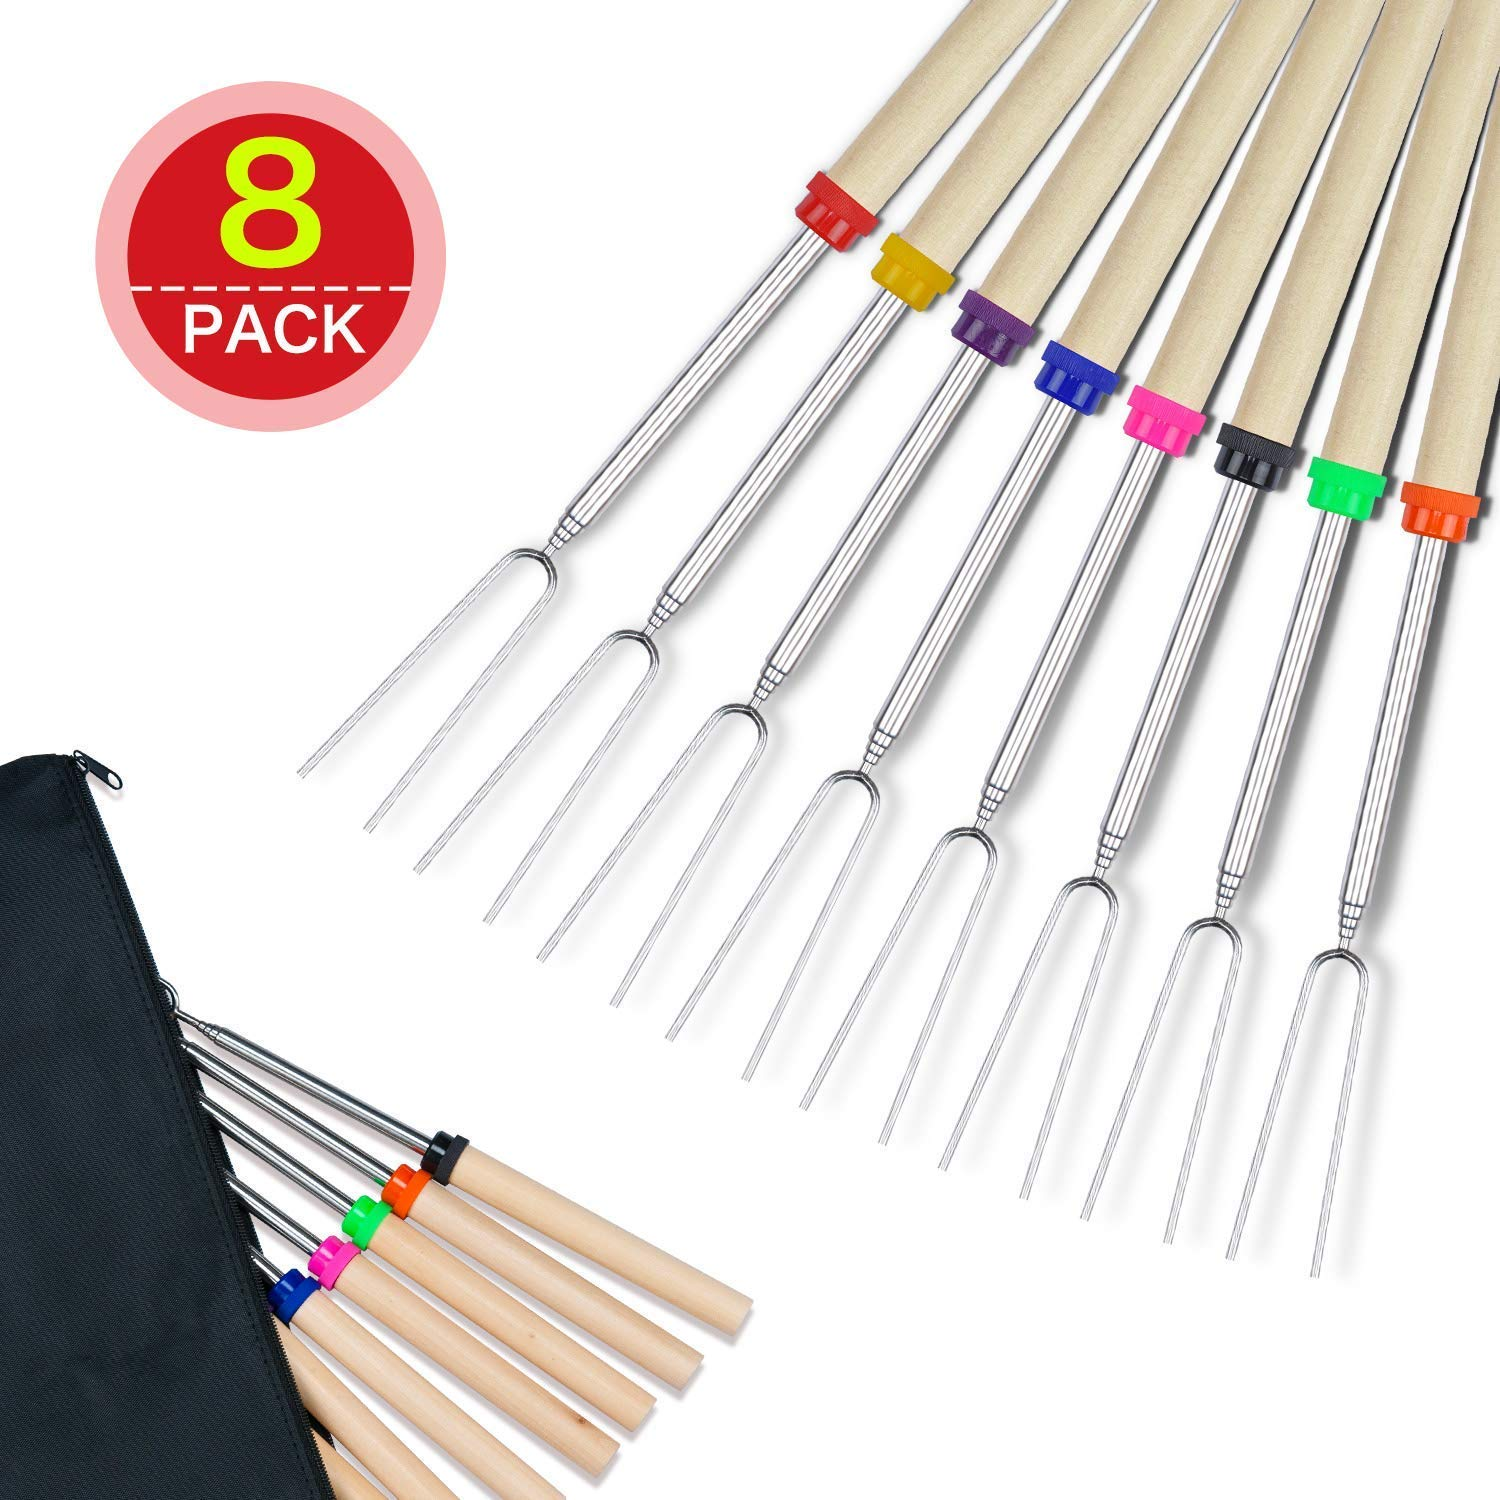 8-Piece Lysport BBQ Marshmallow Roasting Stick Set of 8 Telescoping Extendable Rotating Smores Skewers /& Hot Dog Fork 32-Inch Kids Camping Campfire Fire Pit Accessories